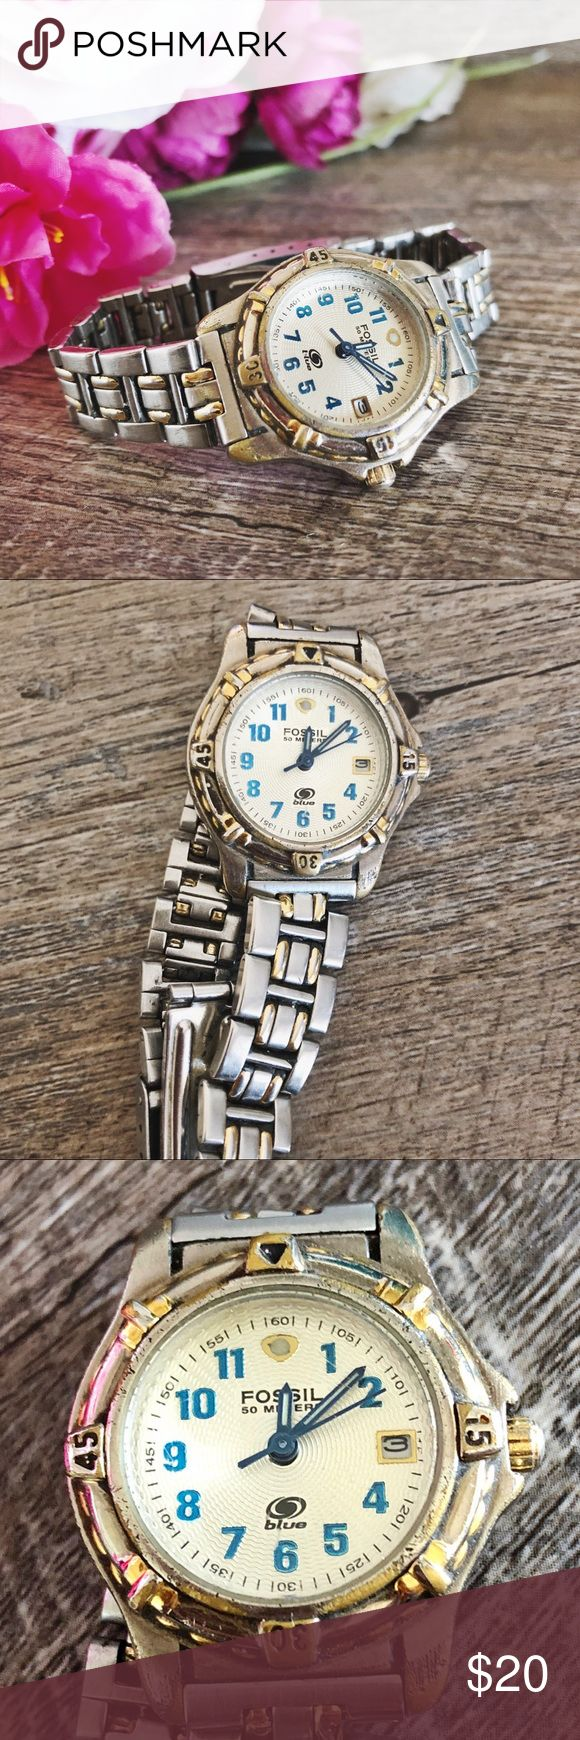 Fossil 50 Meter Blue Watch In well loved condition. Needs battery replacement. No extra links or box included. Price reflects condition. Fossil Accessories Watches